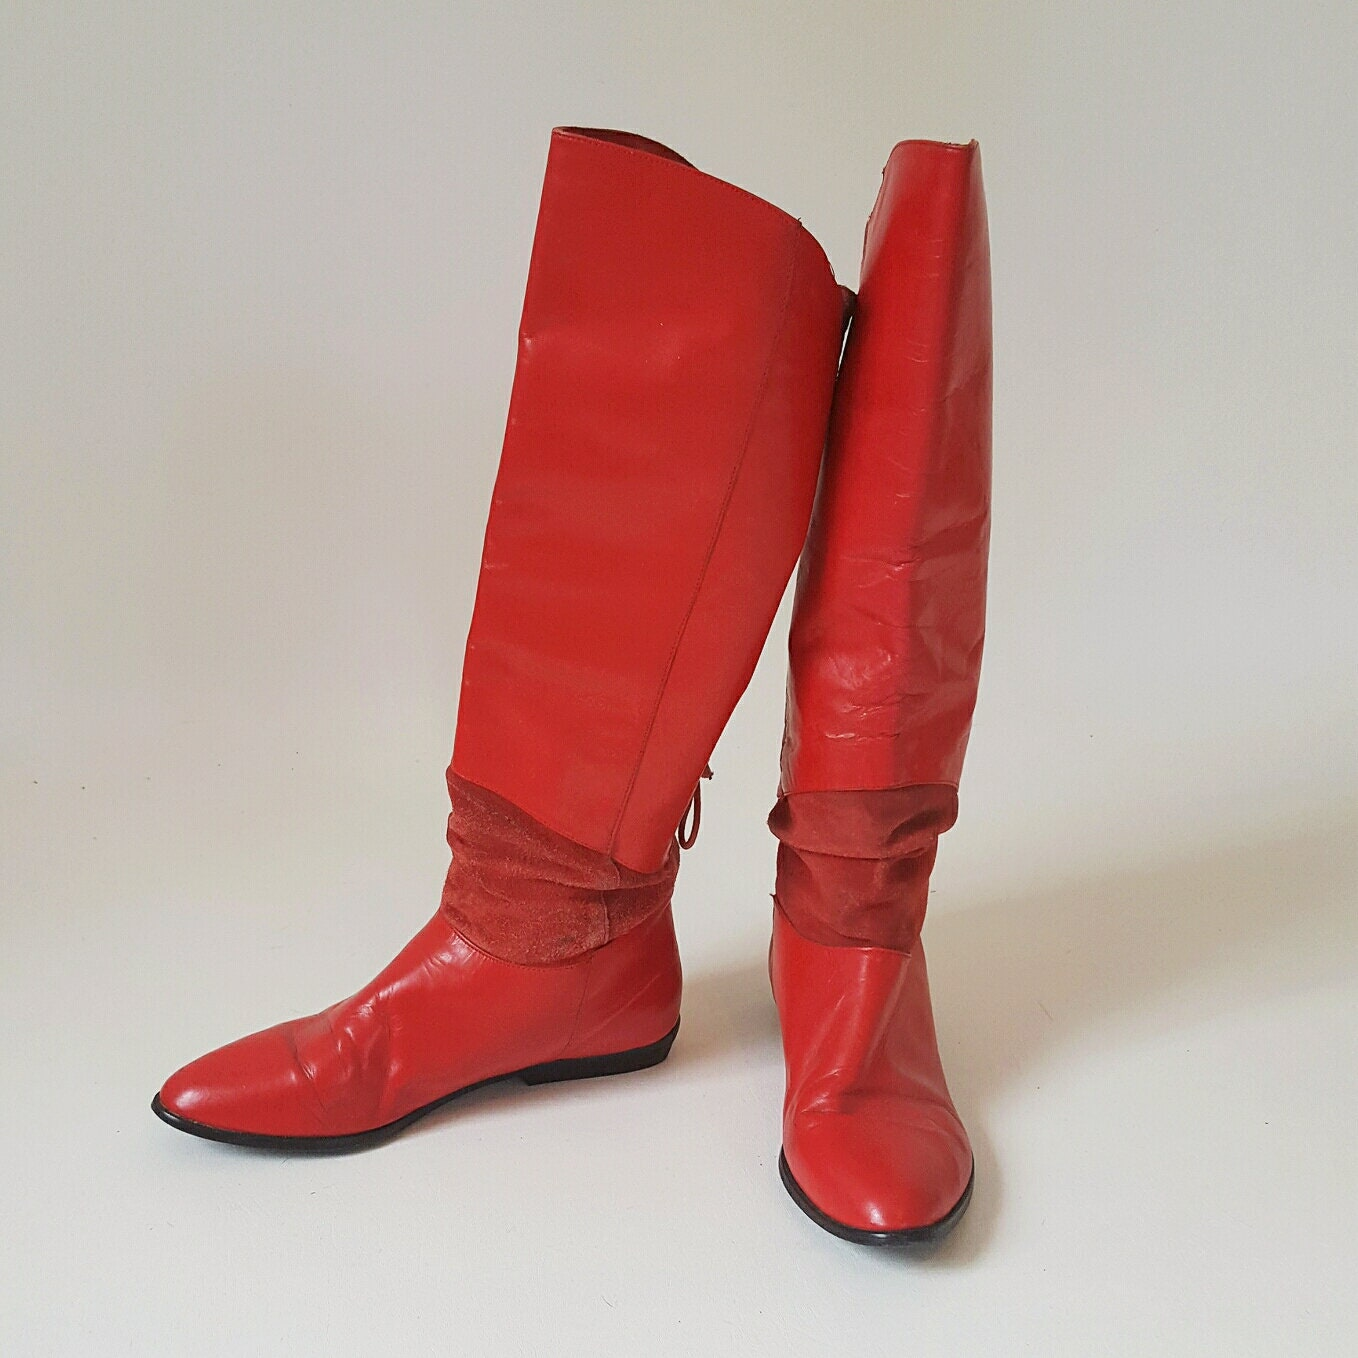 d17f8d98fc4 ... Red Suede Knee High Pointy Boots - Tall Flat Heel Boots with Lace-Up  Details. gallery photo ...